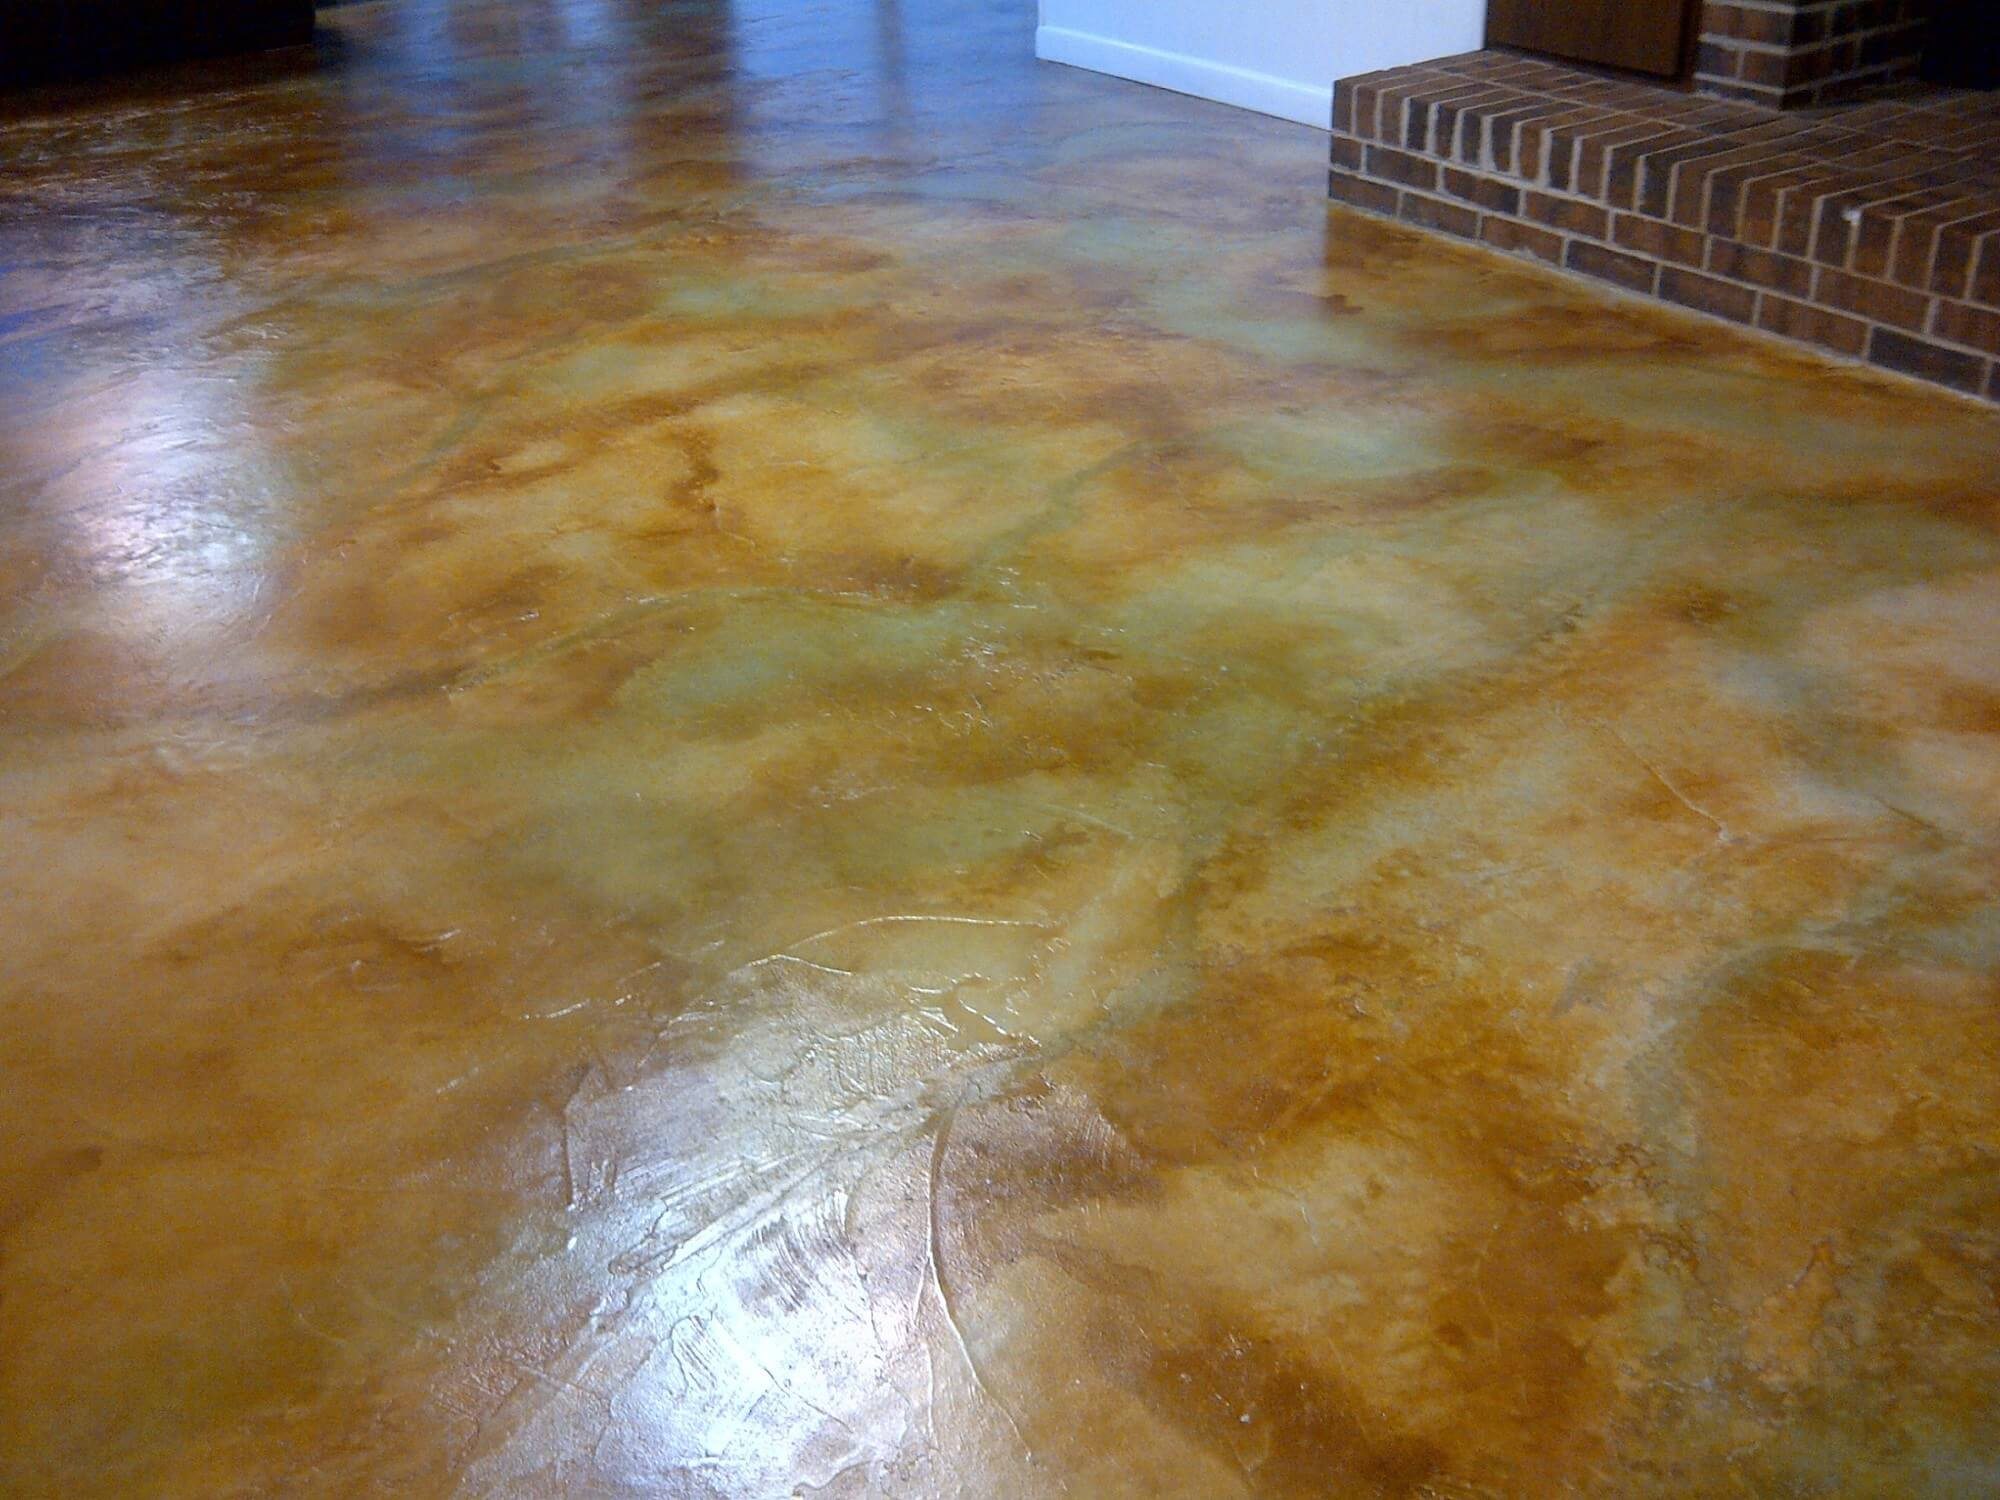 Design by project: Basement Floor Concrete Overlay Magic